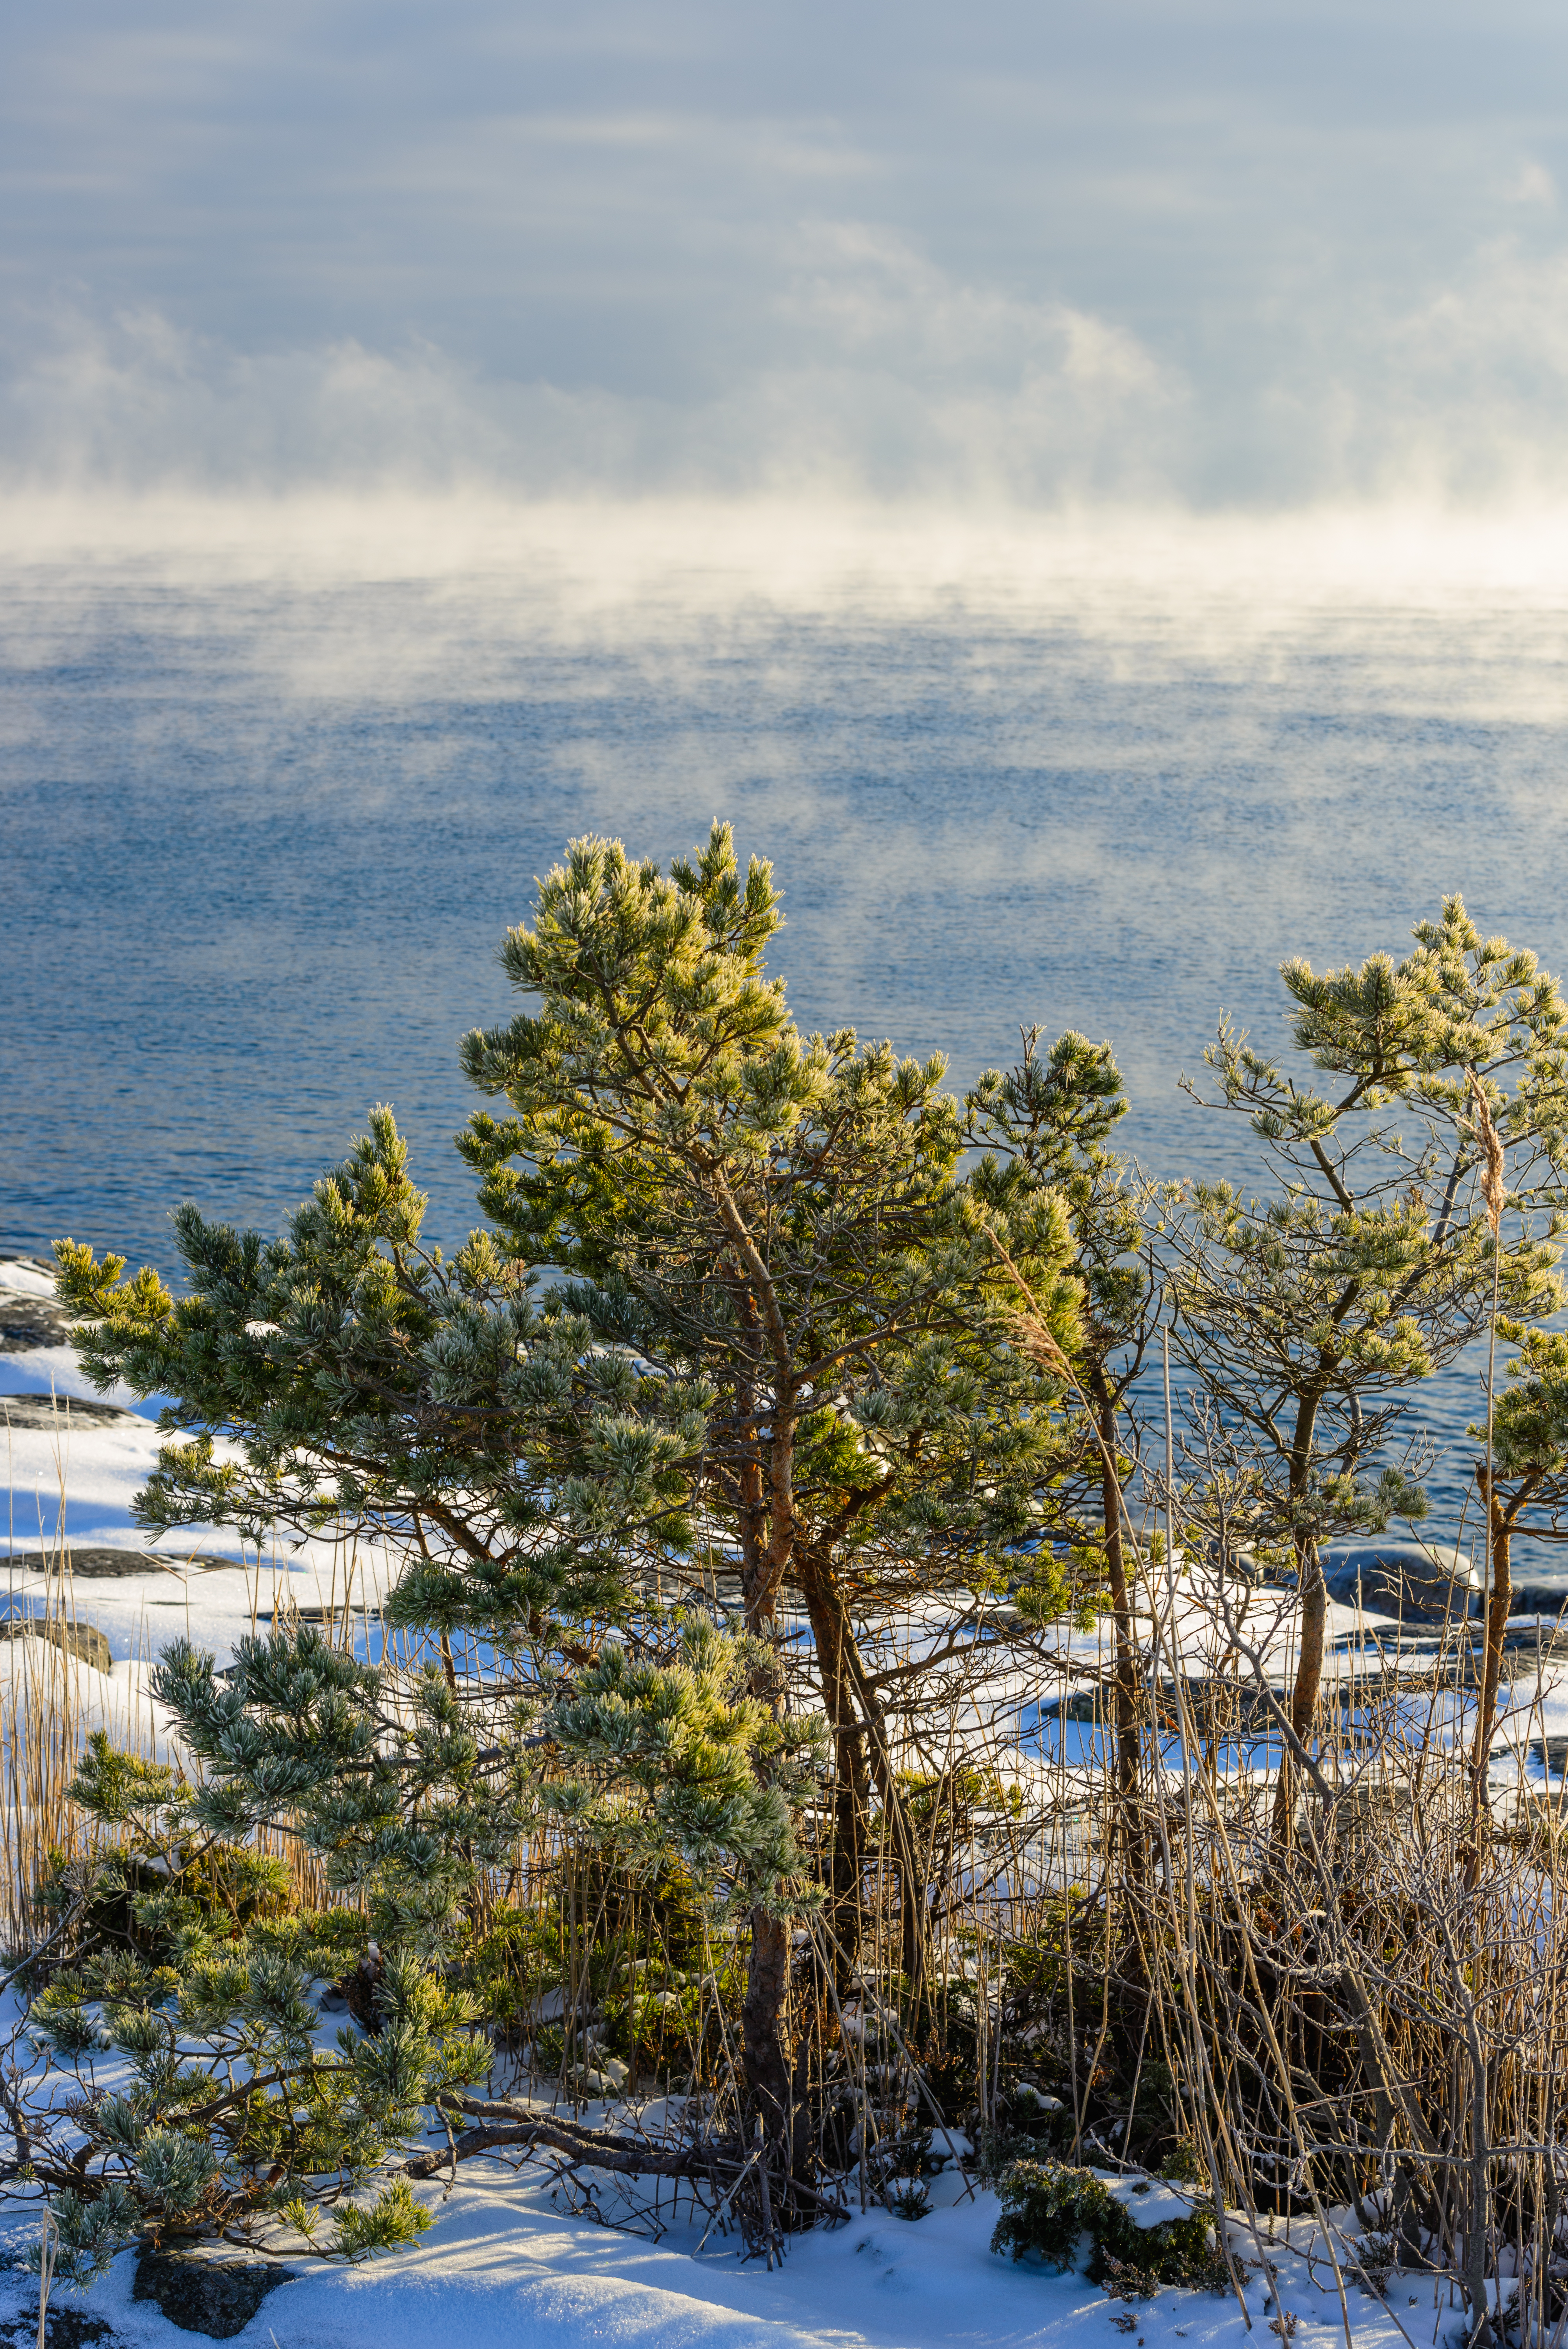 A snowy landscape with a Scots pine prominent